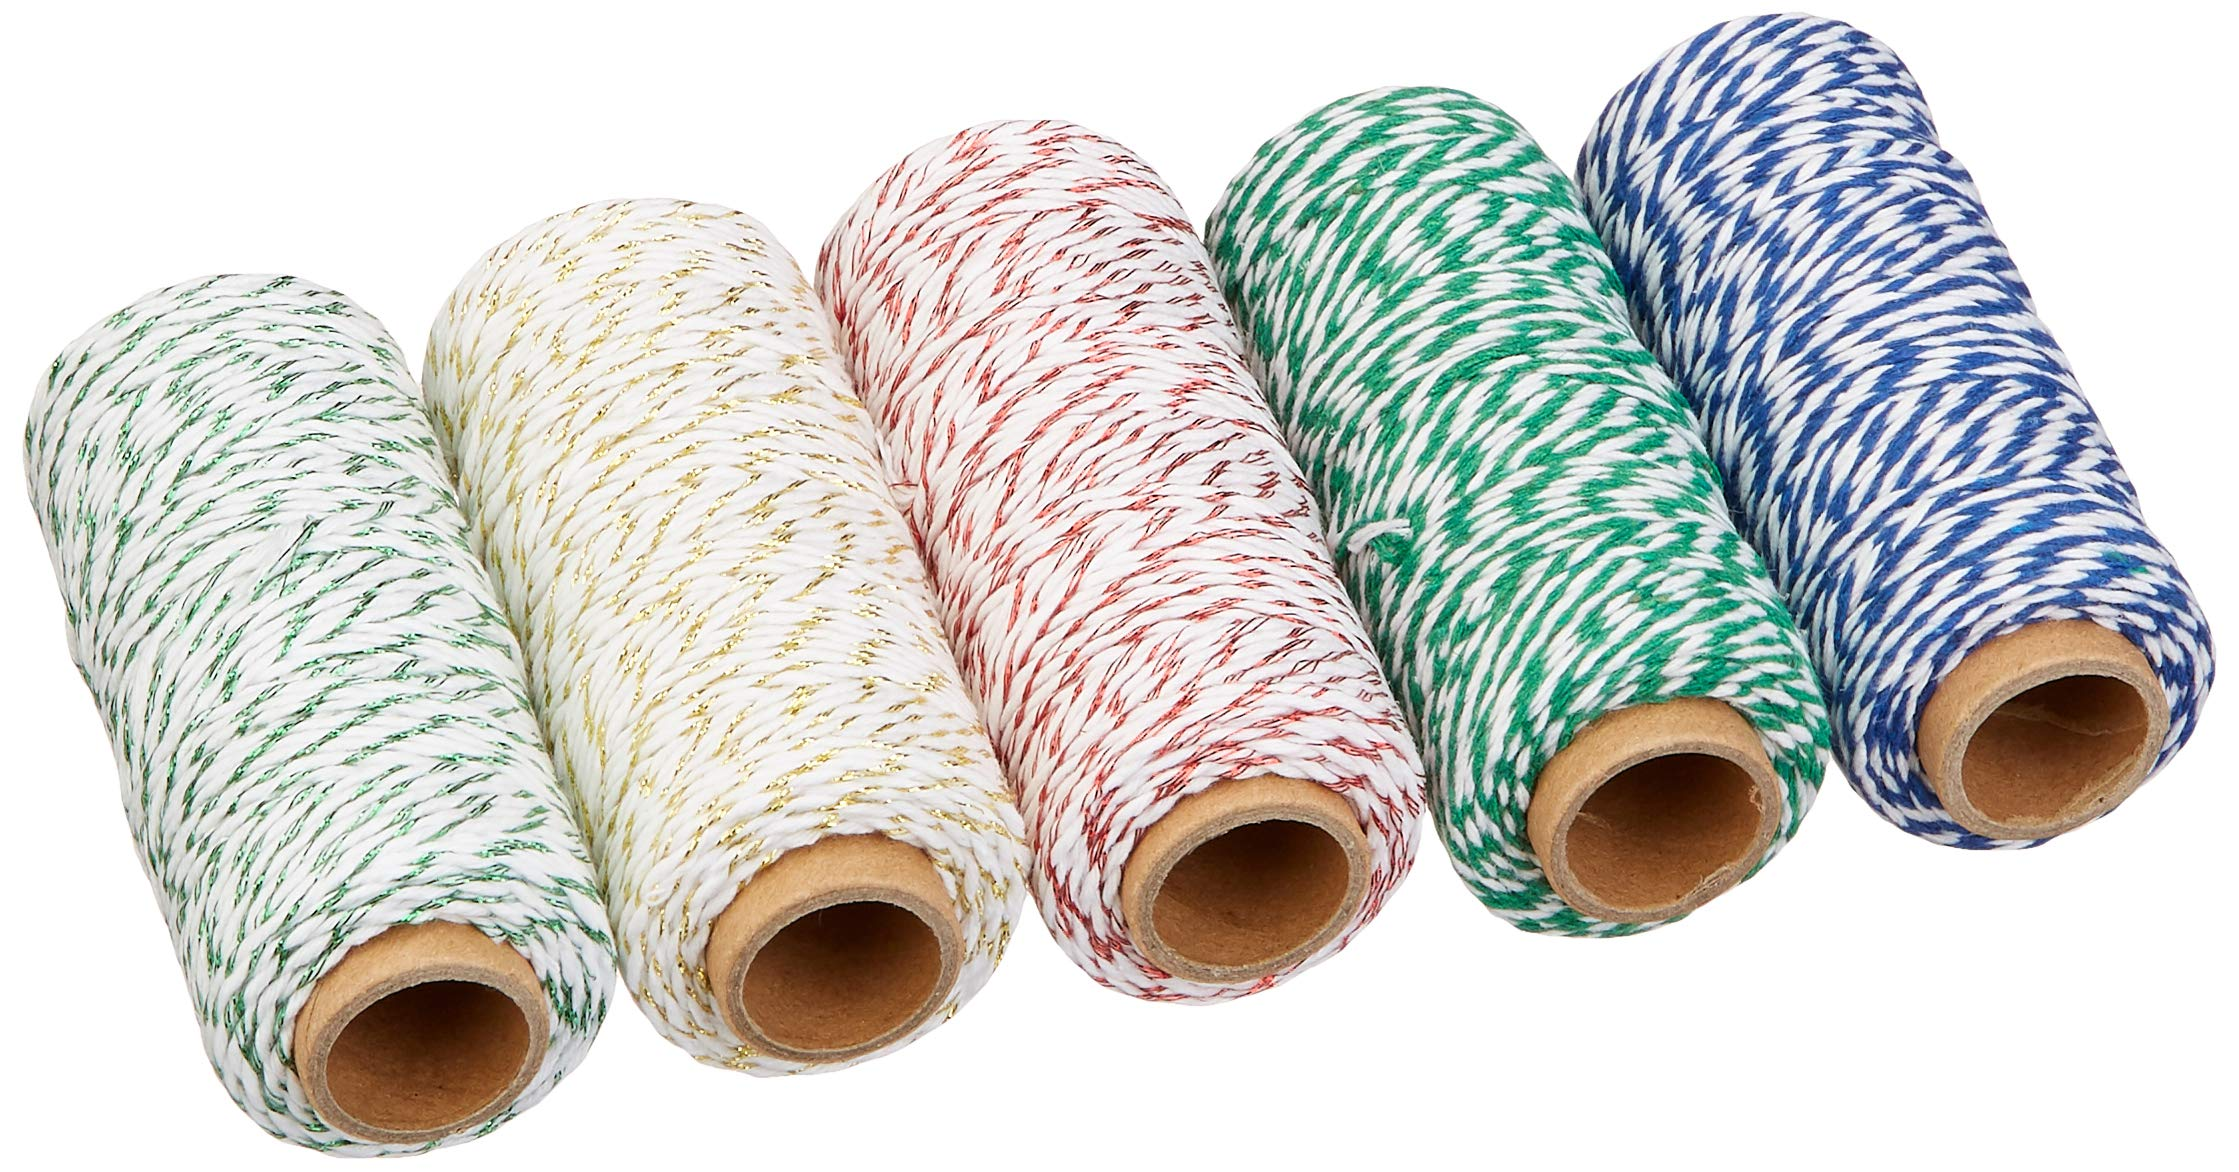 Baker's Twine Metallic Set with Woven-in Gold Filament, 250 Yards Total by K-Kraft